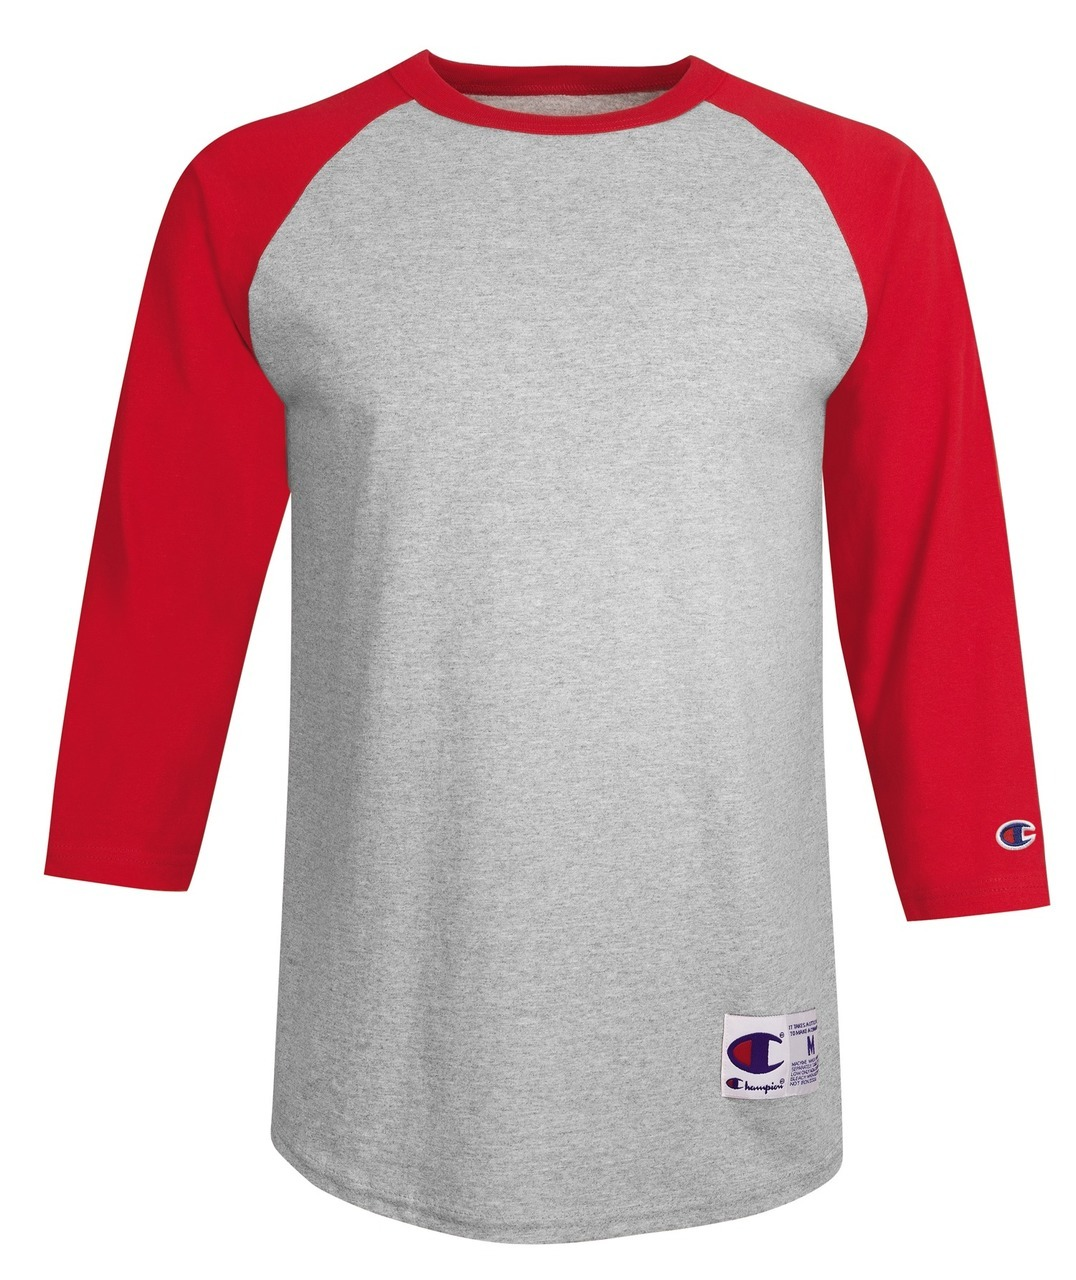 ed30154017 Top 5 Long Sleeve Shirts - Athleticwear.ca